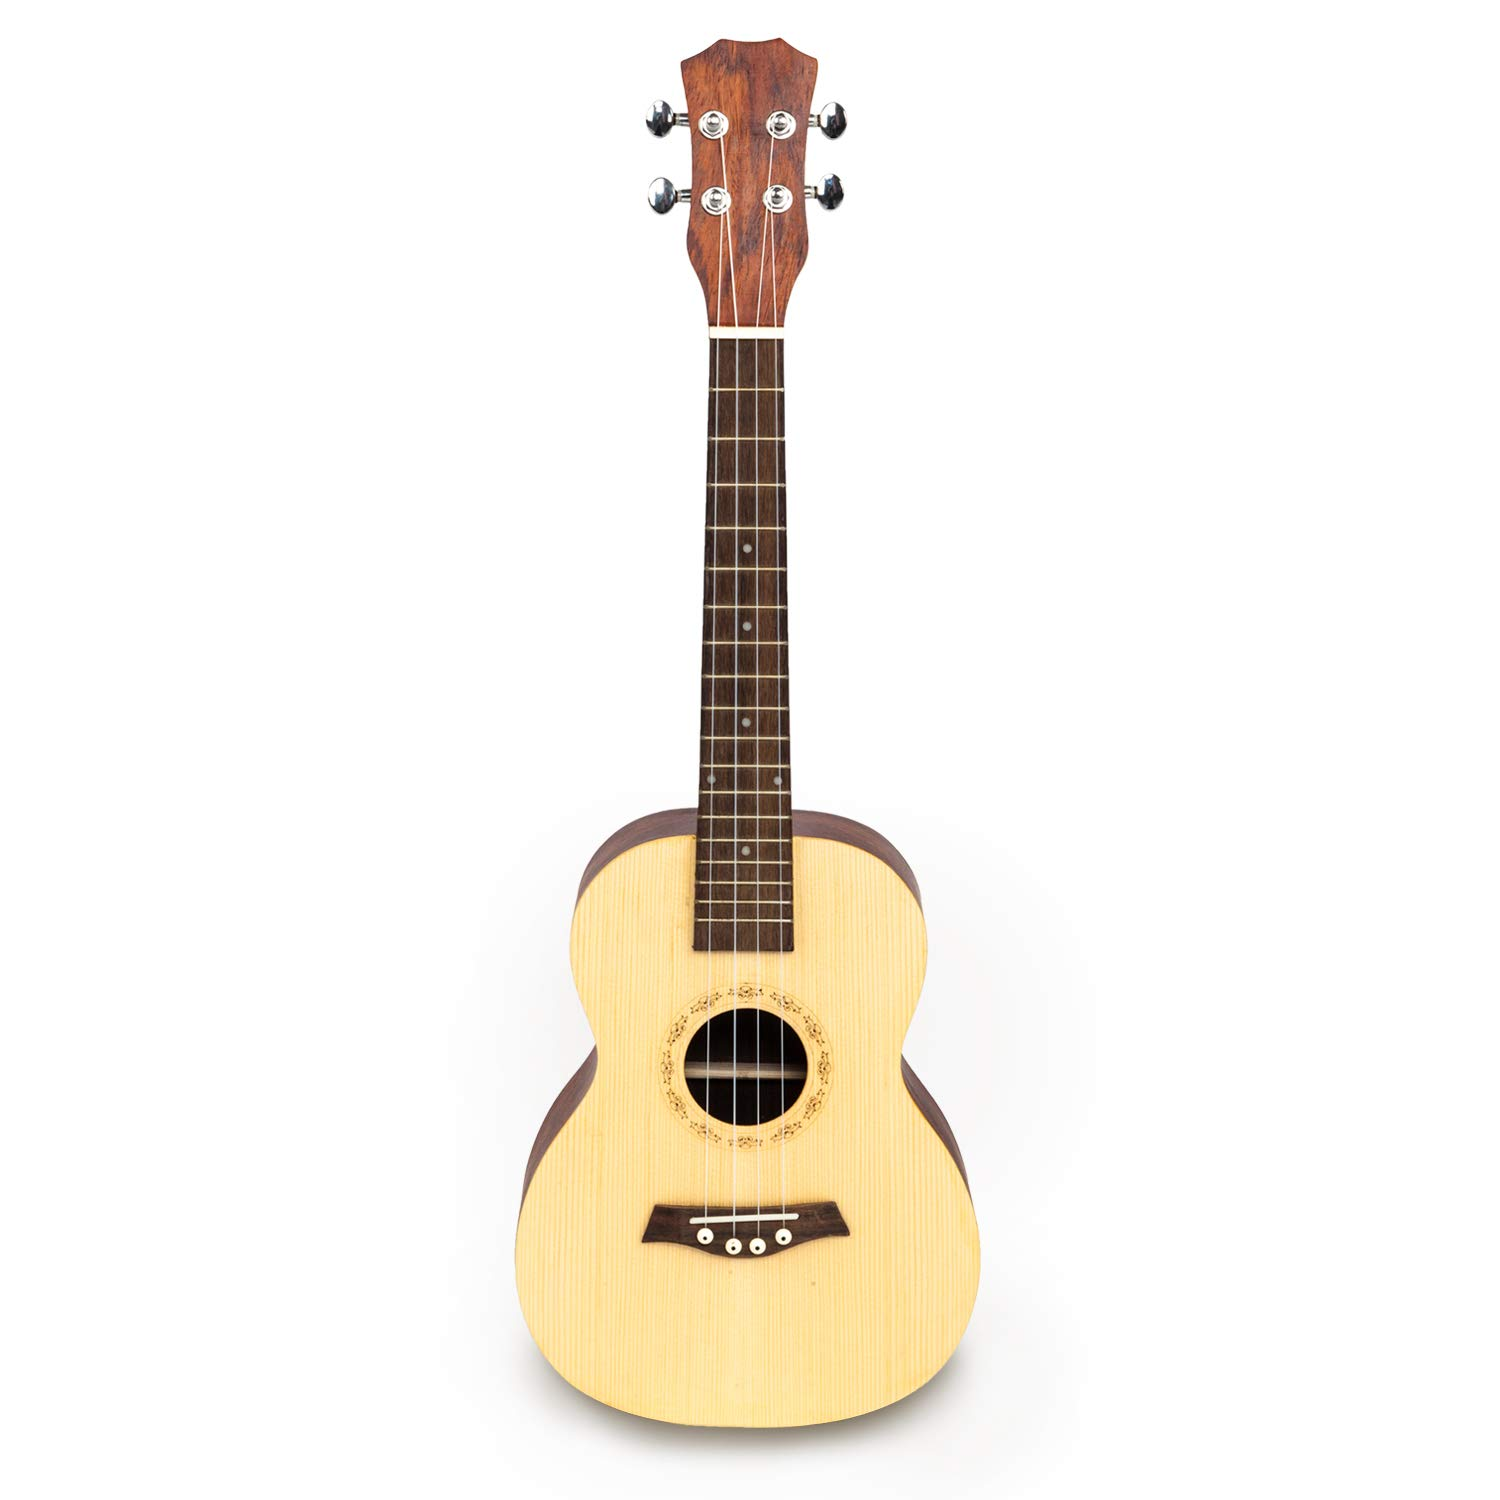 YORKMALL 26'' Tenor Spruce Front-panel with Cacao Pineapple Wood Back and Side Panel Ukulele Wood Color